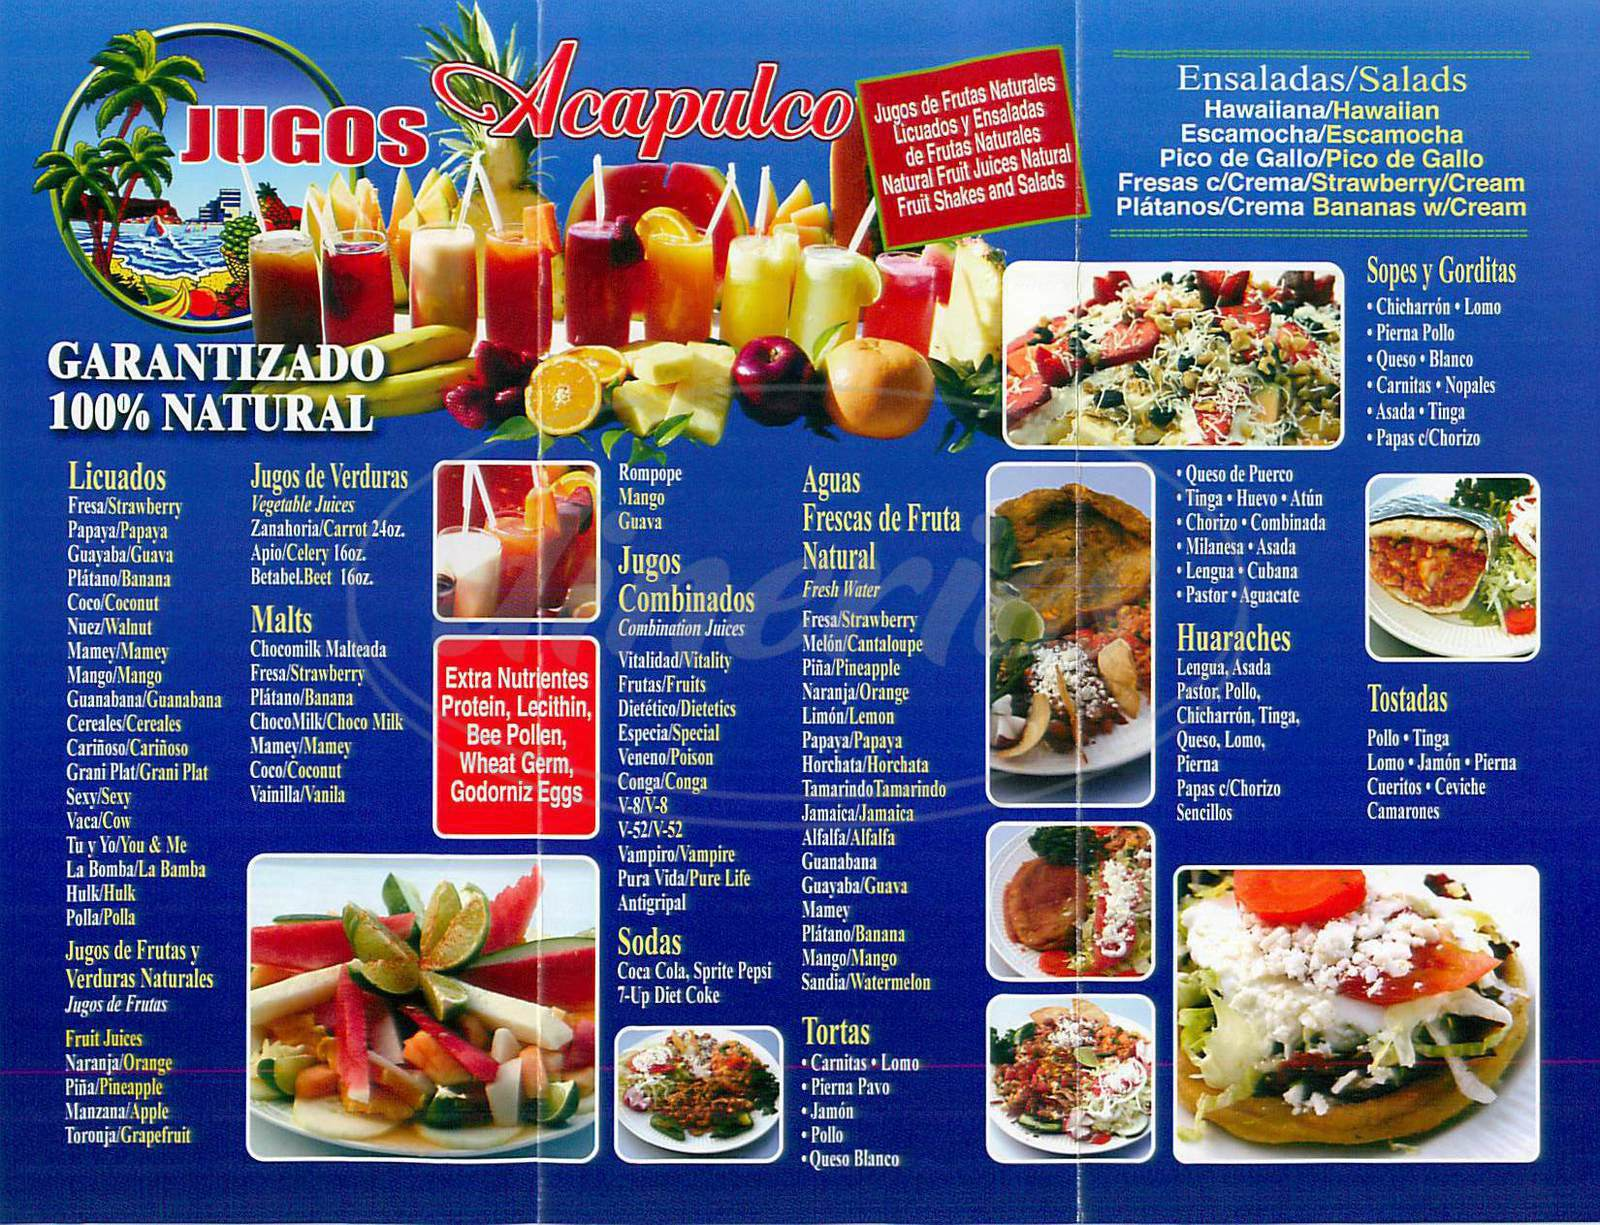 menu for Jugos Acapulco